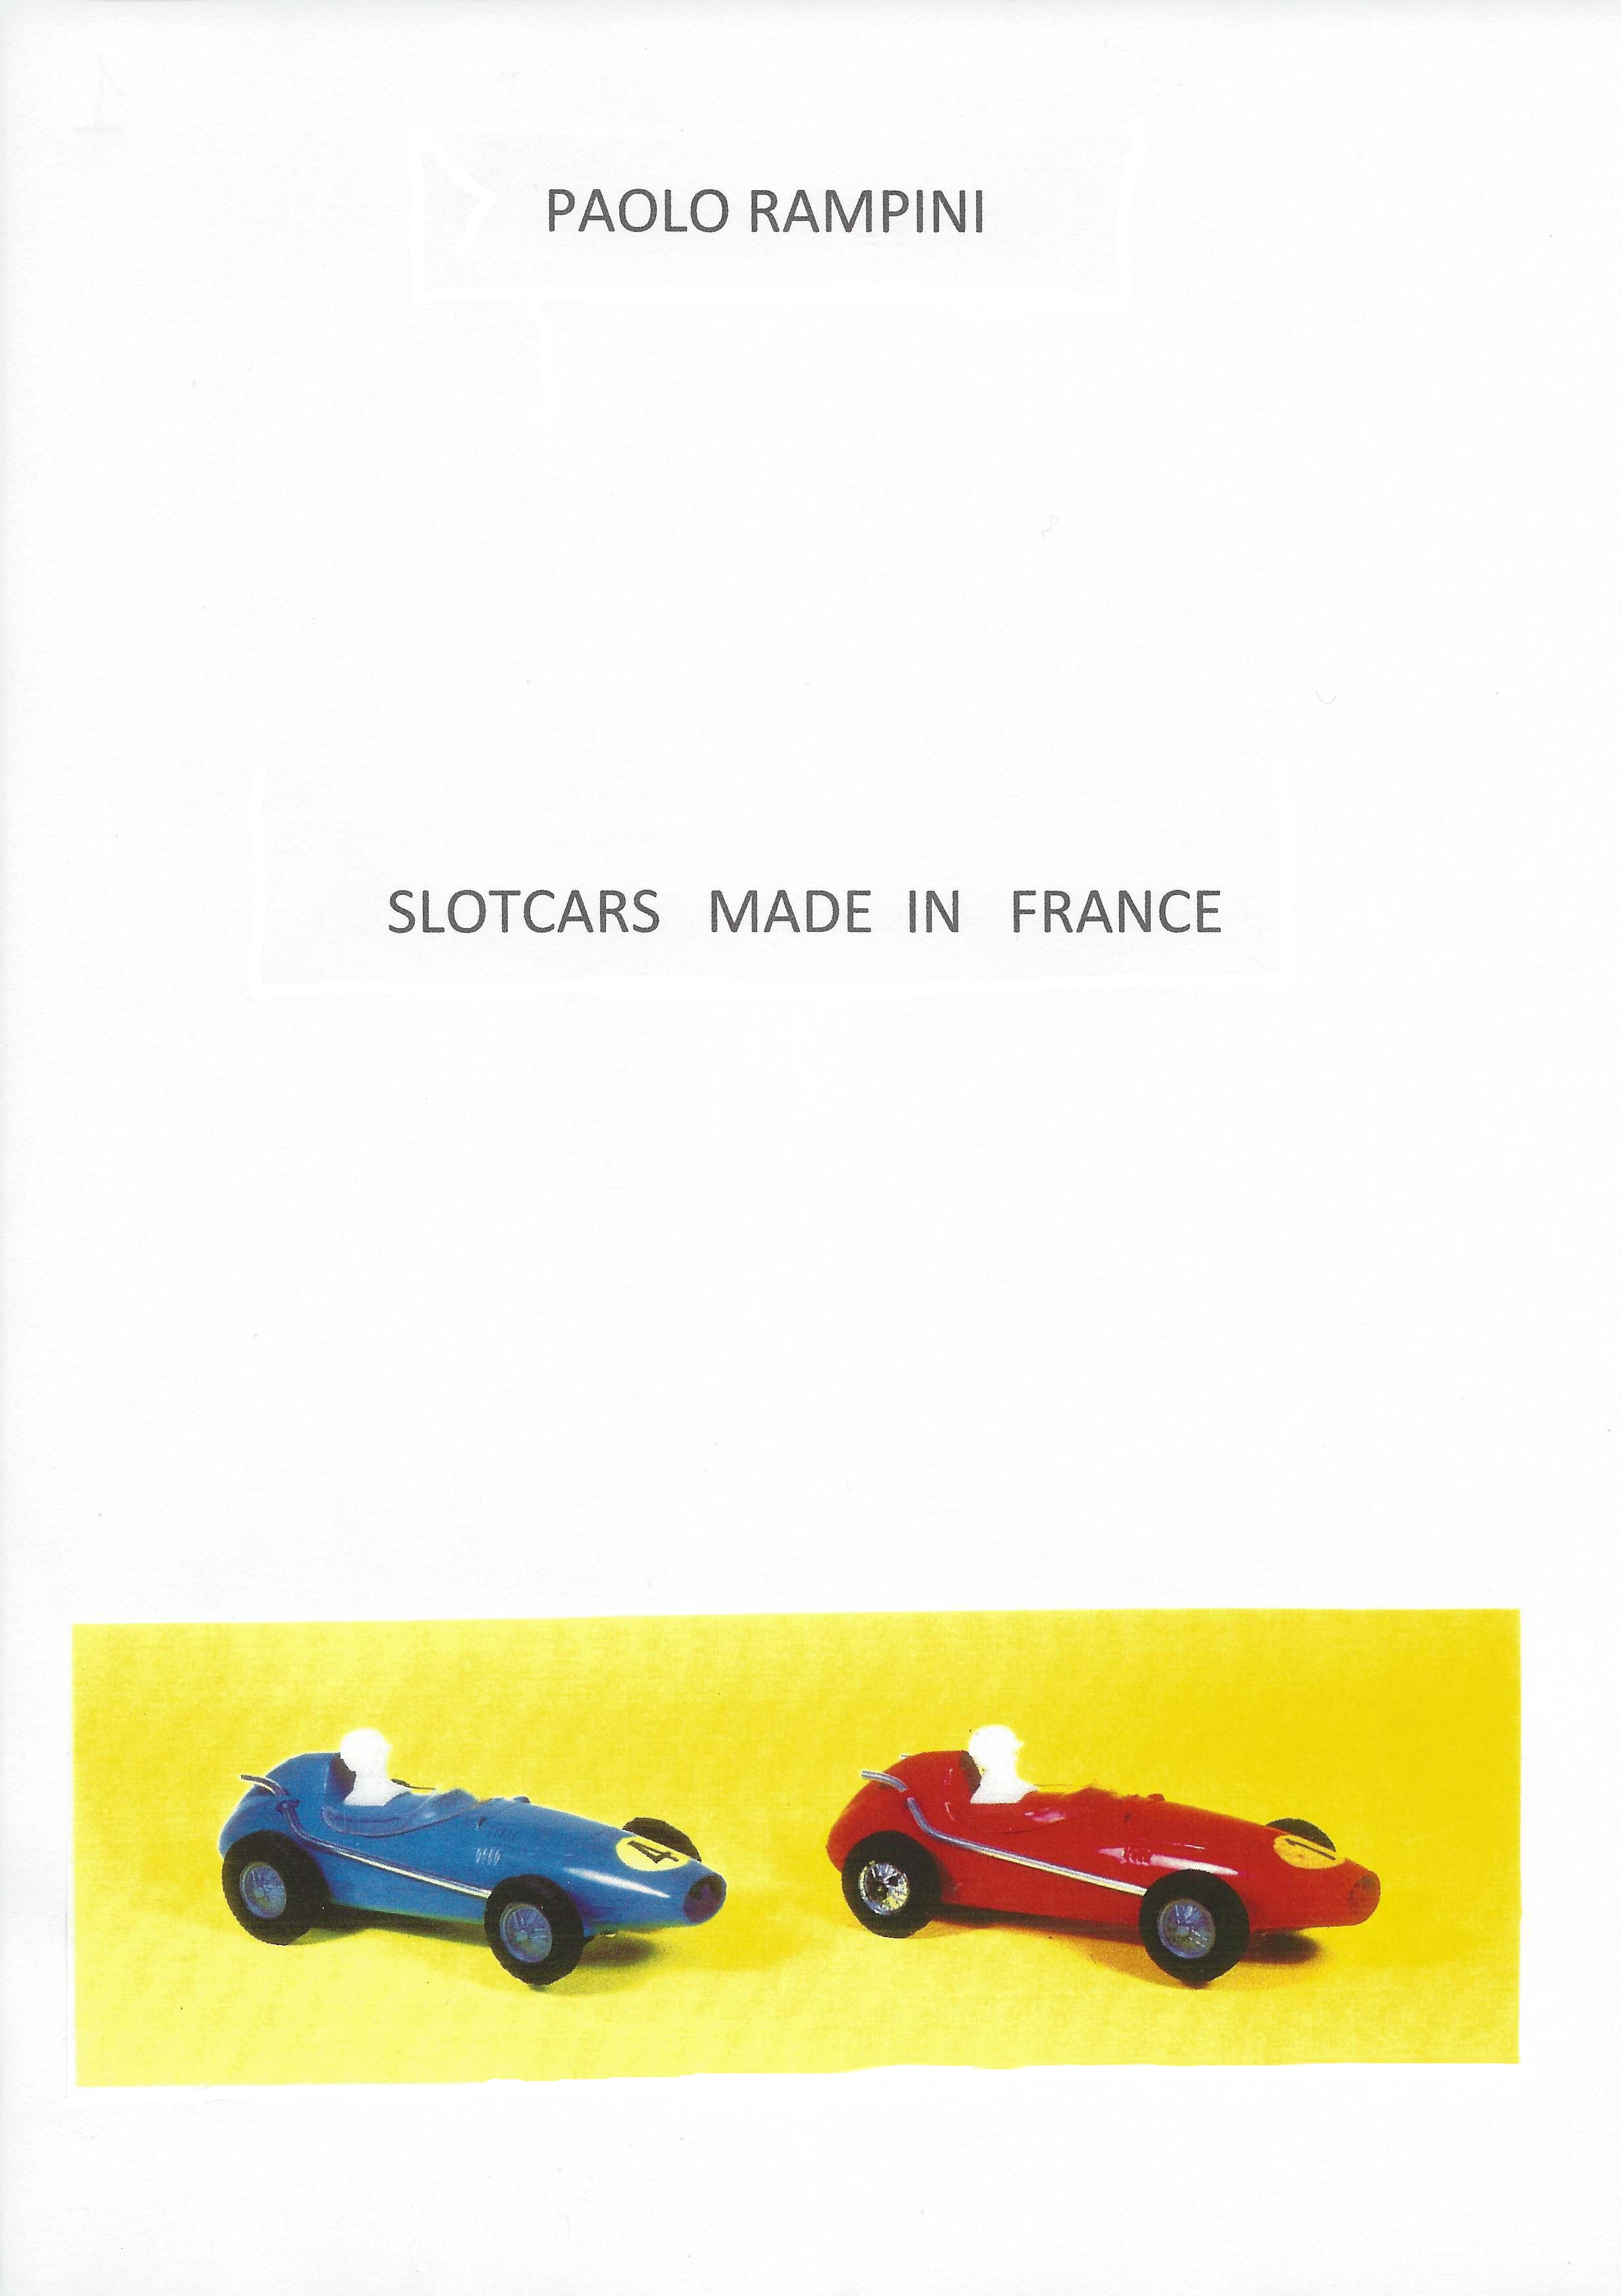 SLOTCARS MADE IN FRANCE, Paolo Rampini, 2014